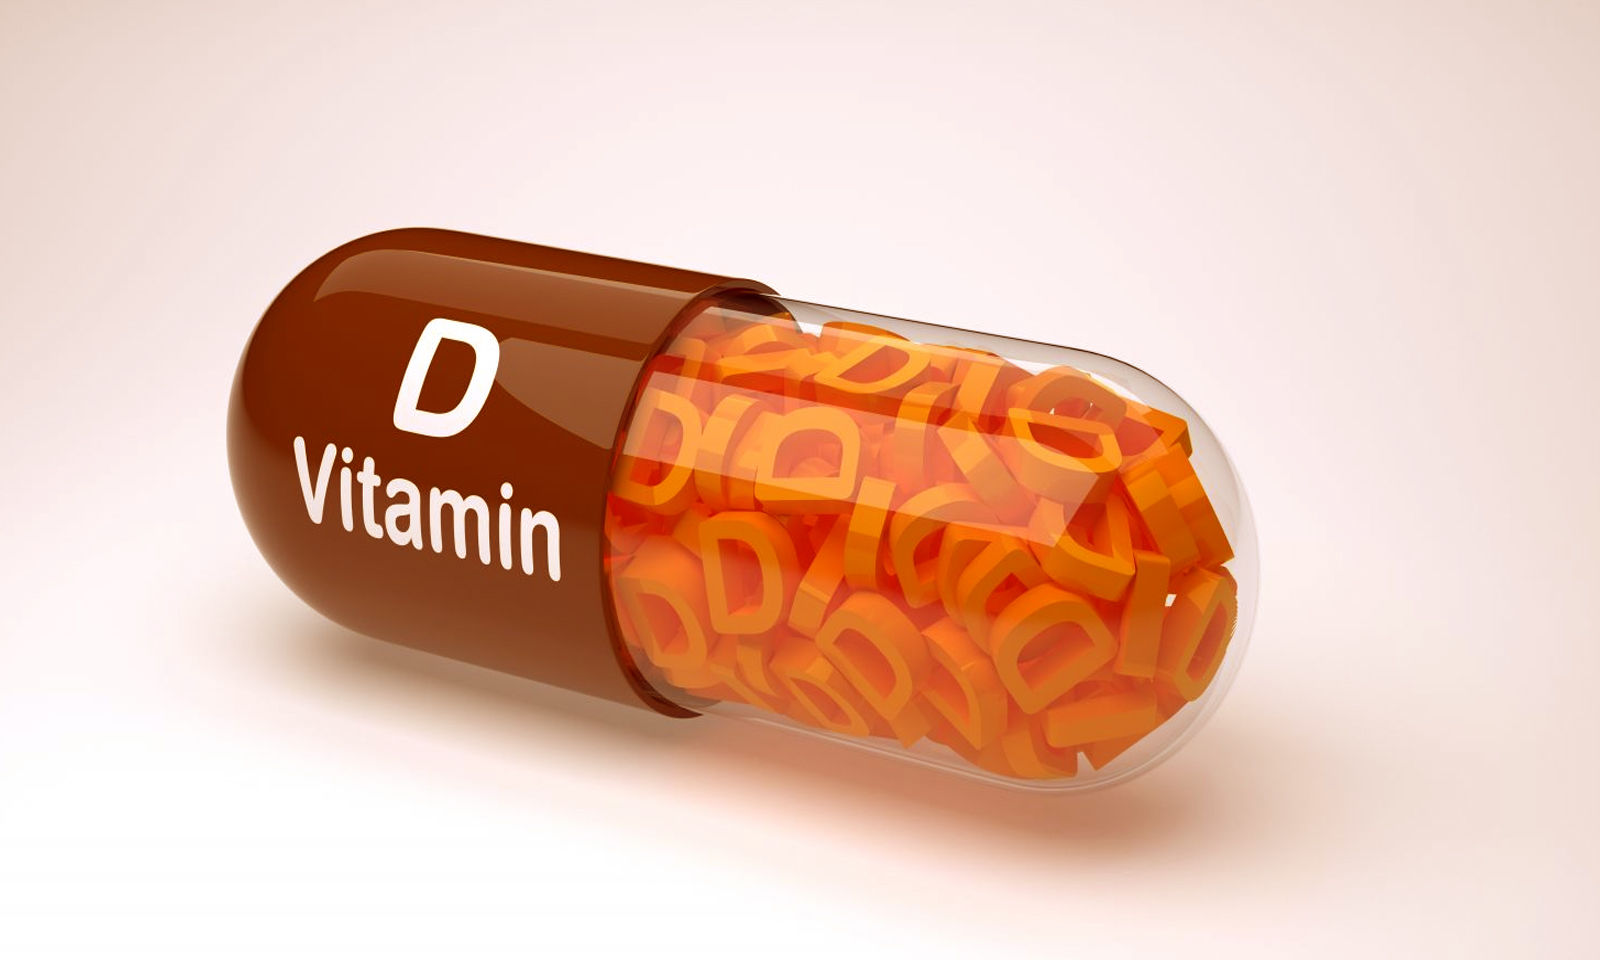 And now I am in Fakebook jail for 24 hours - They really do not want the Vitamin D info made public.  133415-vitamin-d